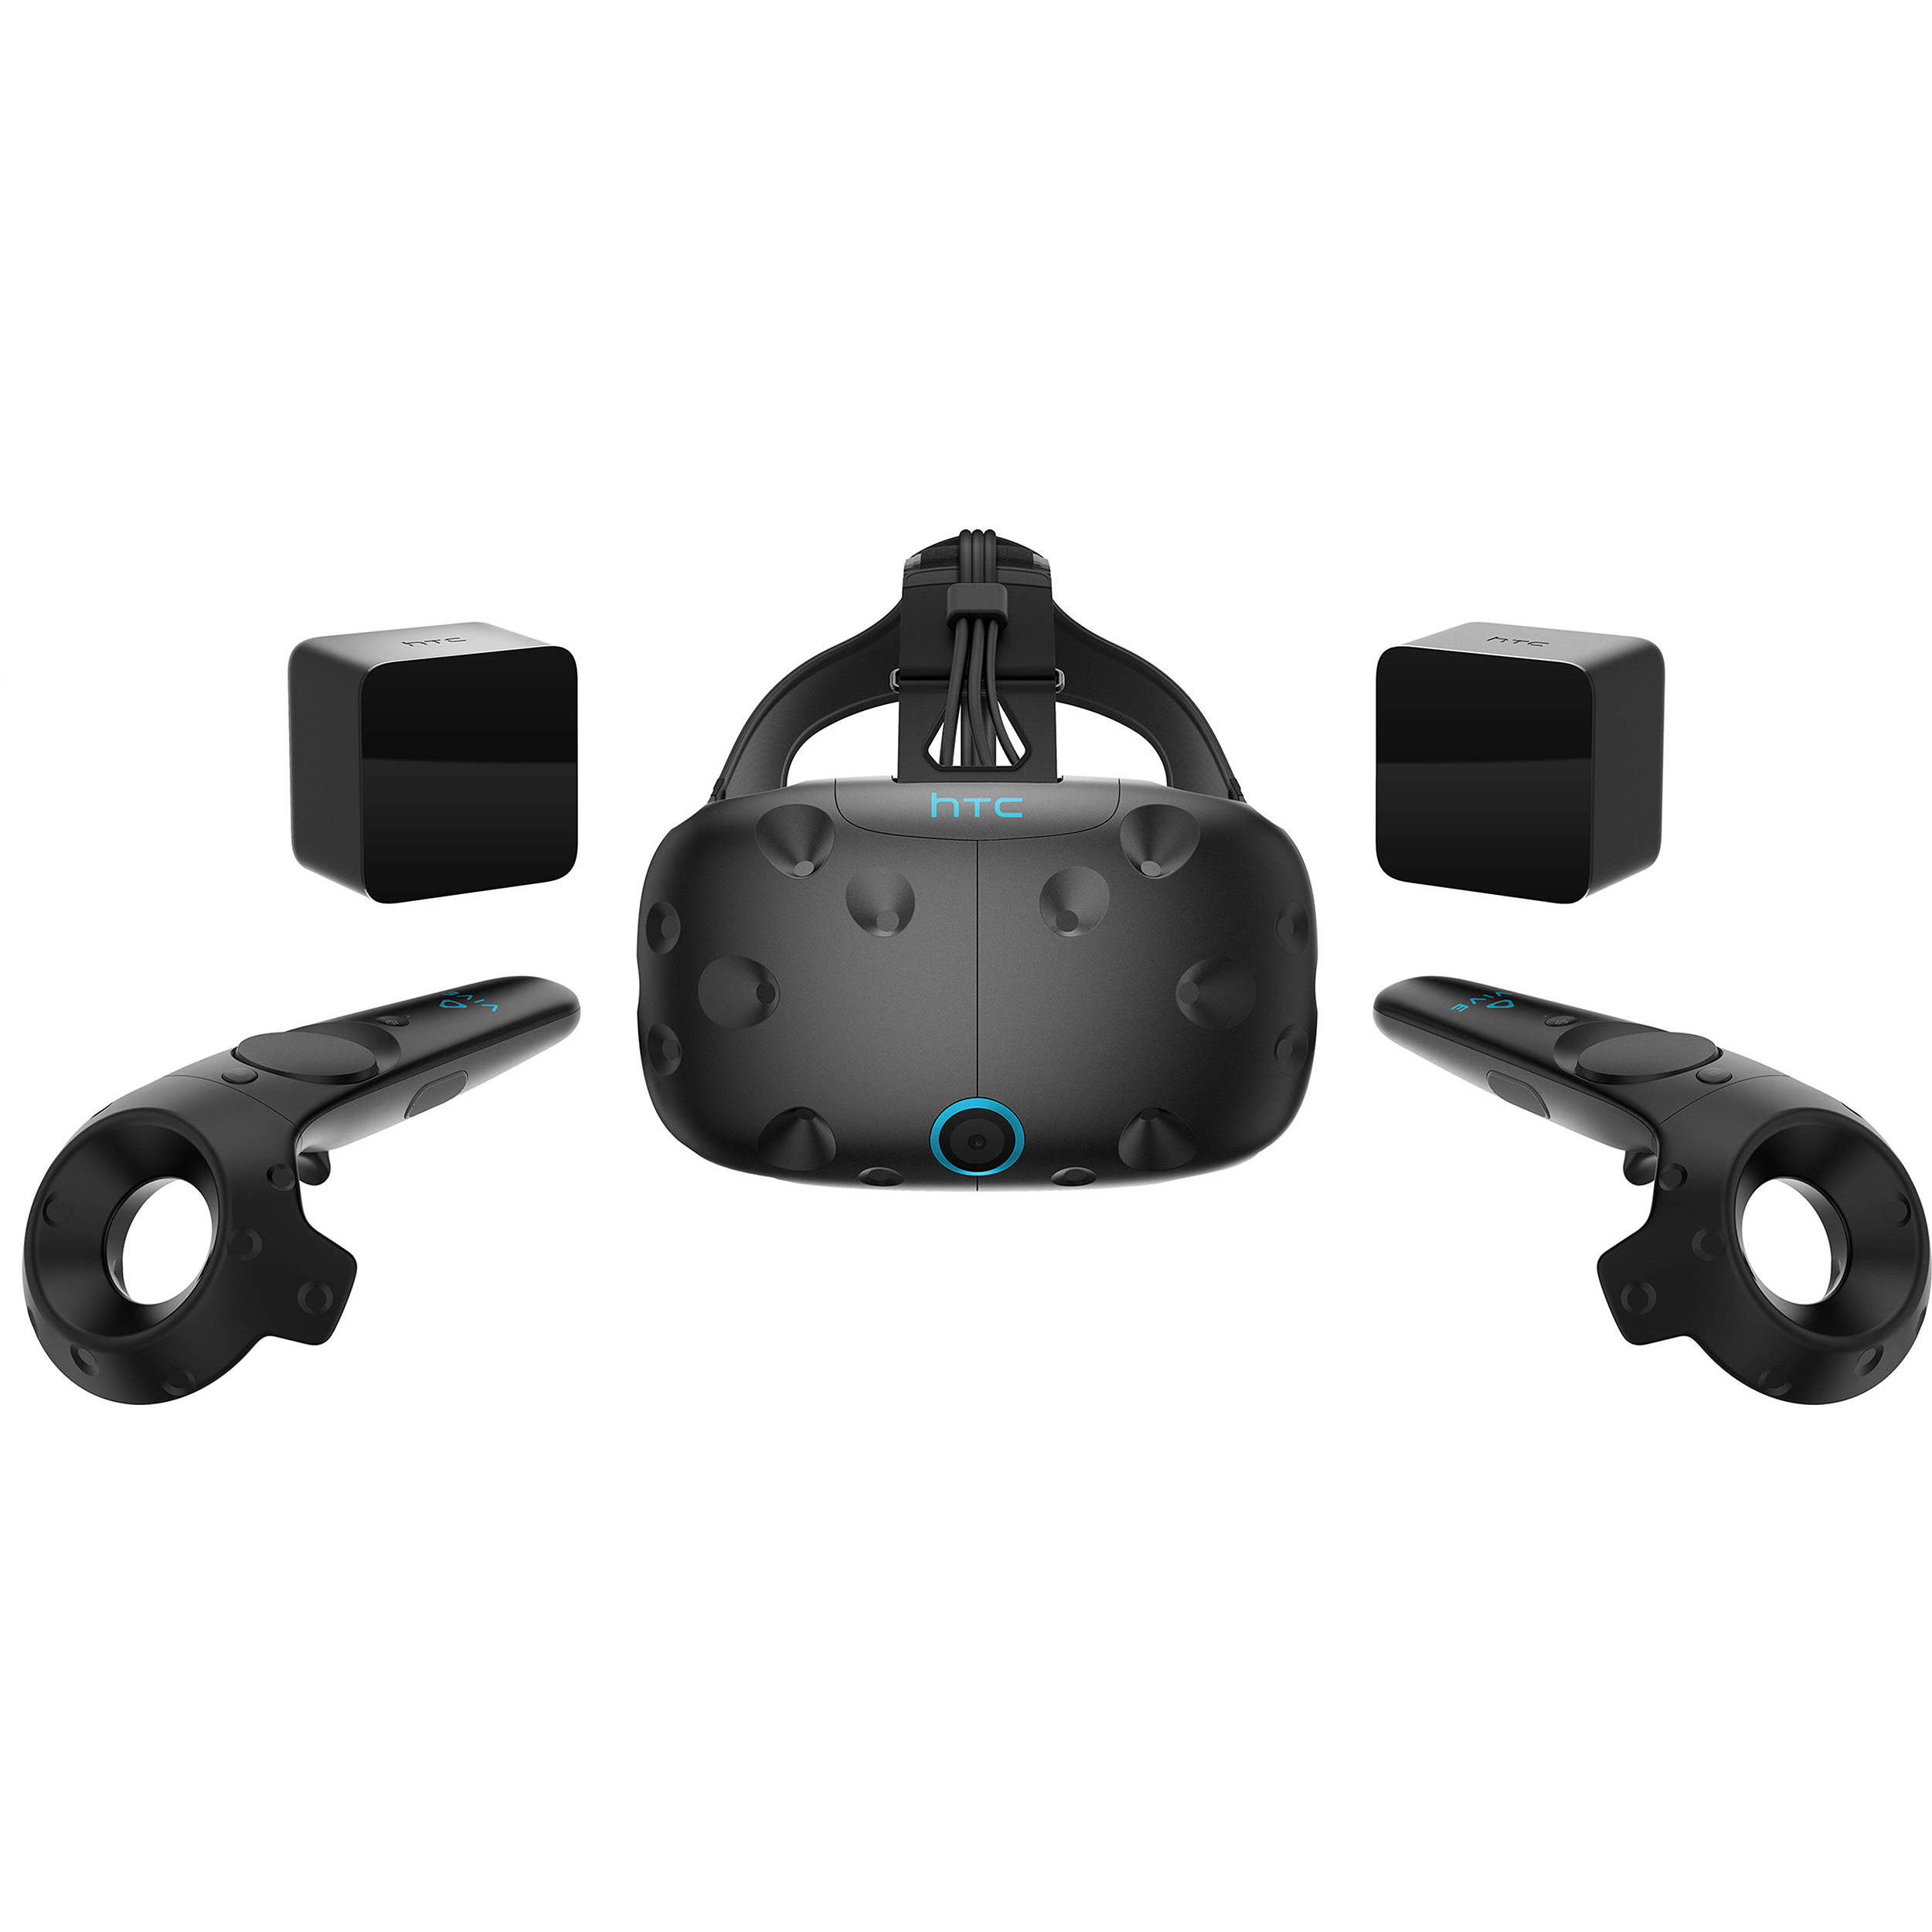 HTC Vive - VR Headset - Interactive solutions as virtual, augmented and mixed reality are undoubtedly the future– and for our clients, present –of communicating architectural design.Thanks to game-changing technologies, your firm can discover and even get an overall feeling of a yet not built development and its environment.Communicate to clients your vision with greater clarity and gain trust. Make decisions with speed and confidence by experiencing a true to scale space. Run QA/QC to catch costly coordination issues.BookingIncludes HTC Vive setup and 2 weeks of use, Iris VR Software and VR Desktop rig.